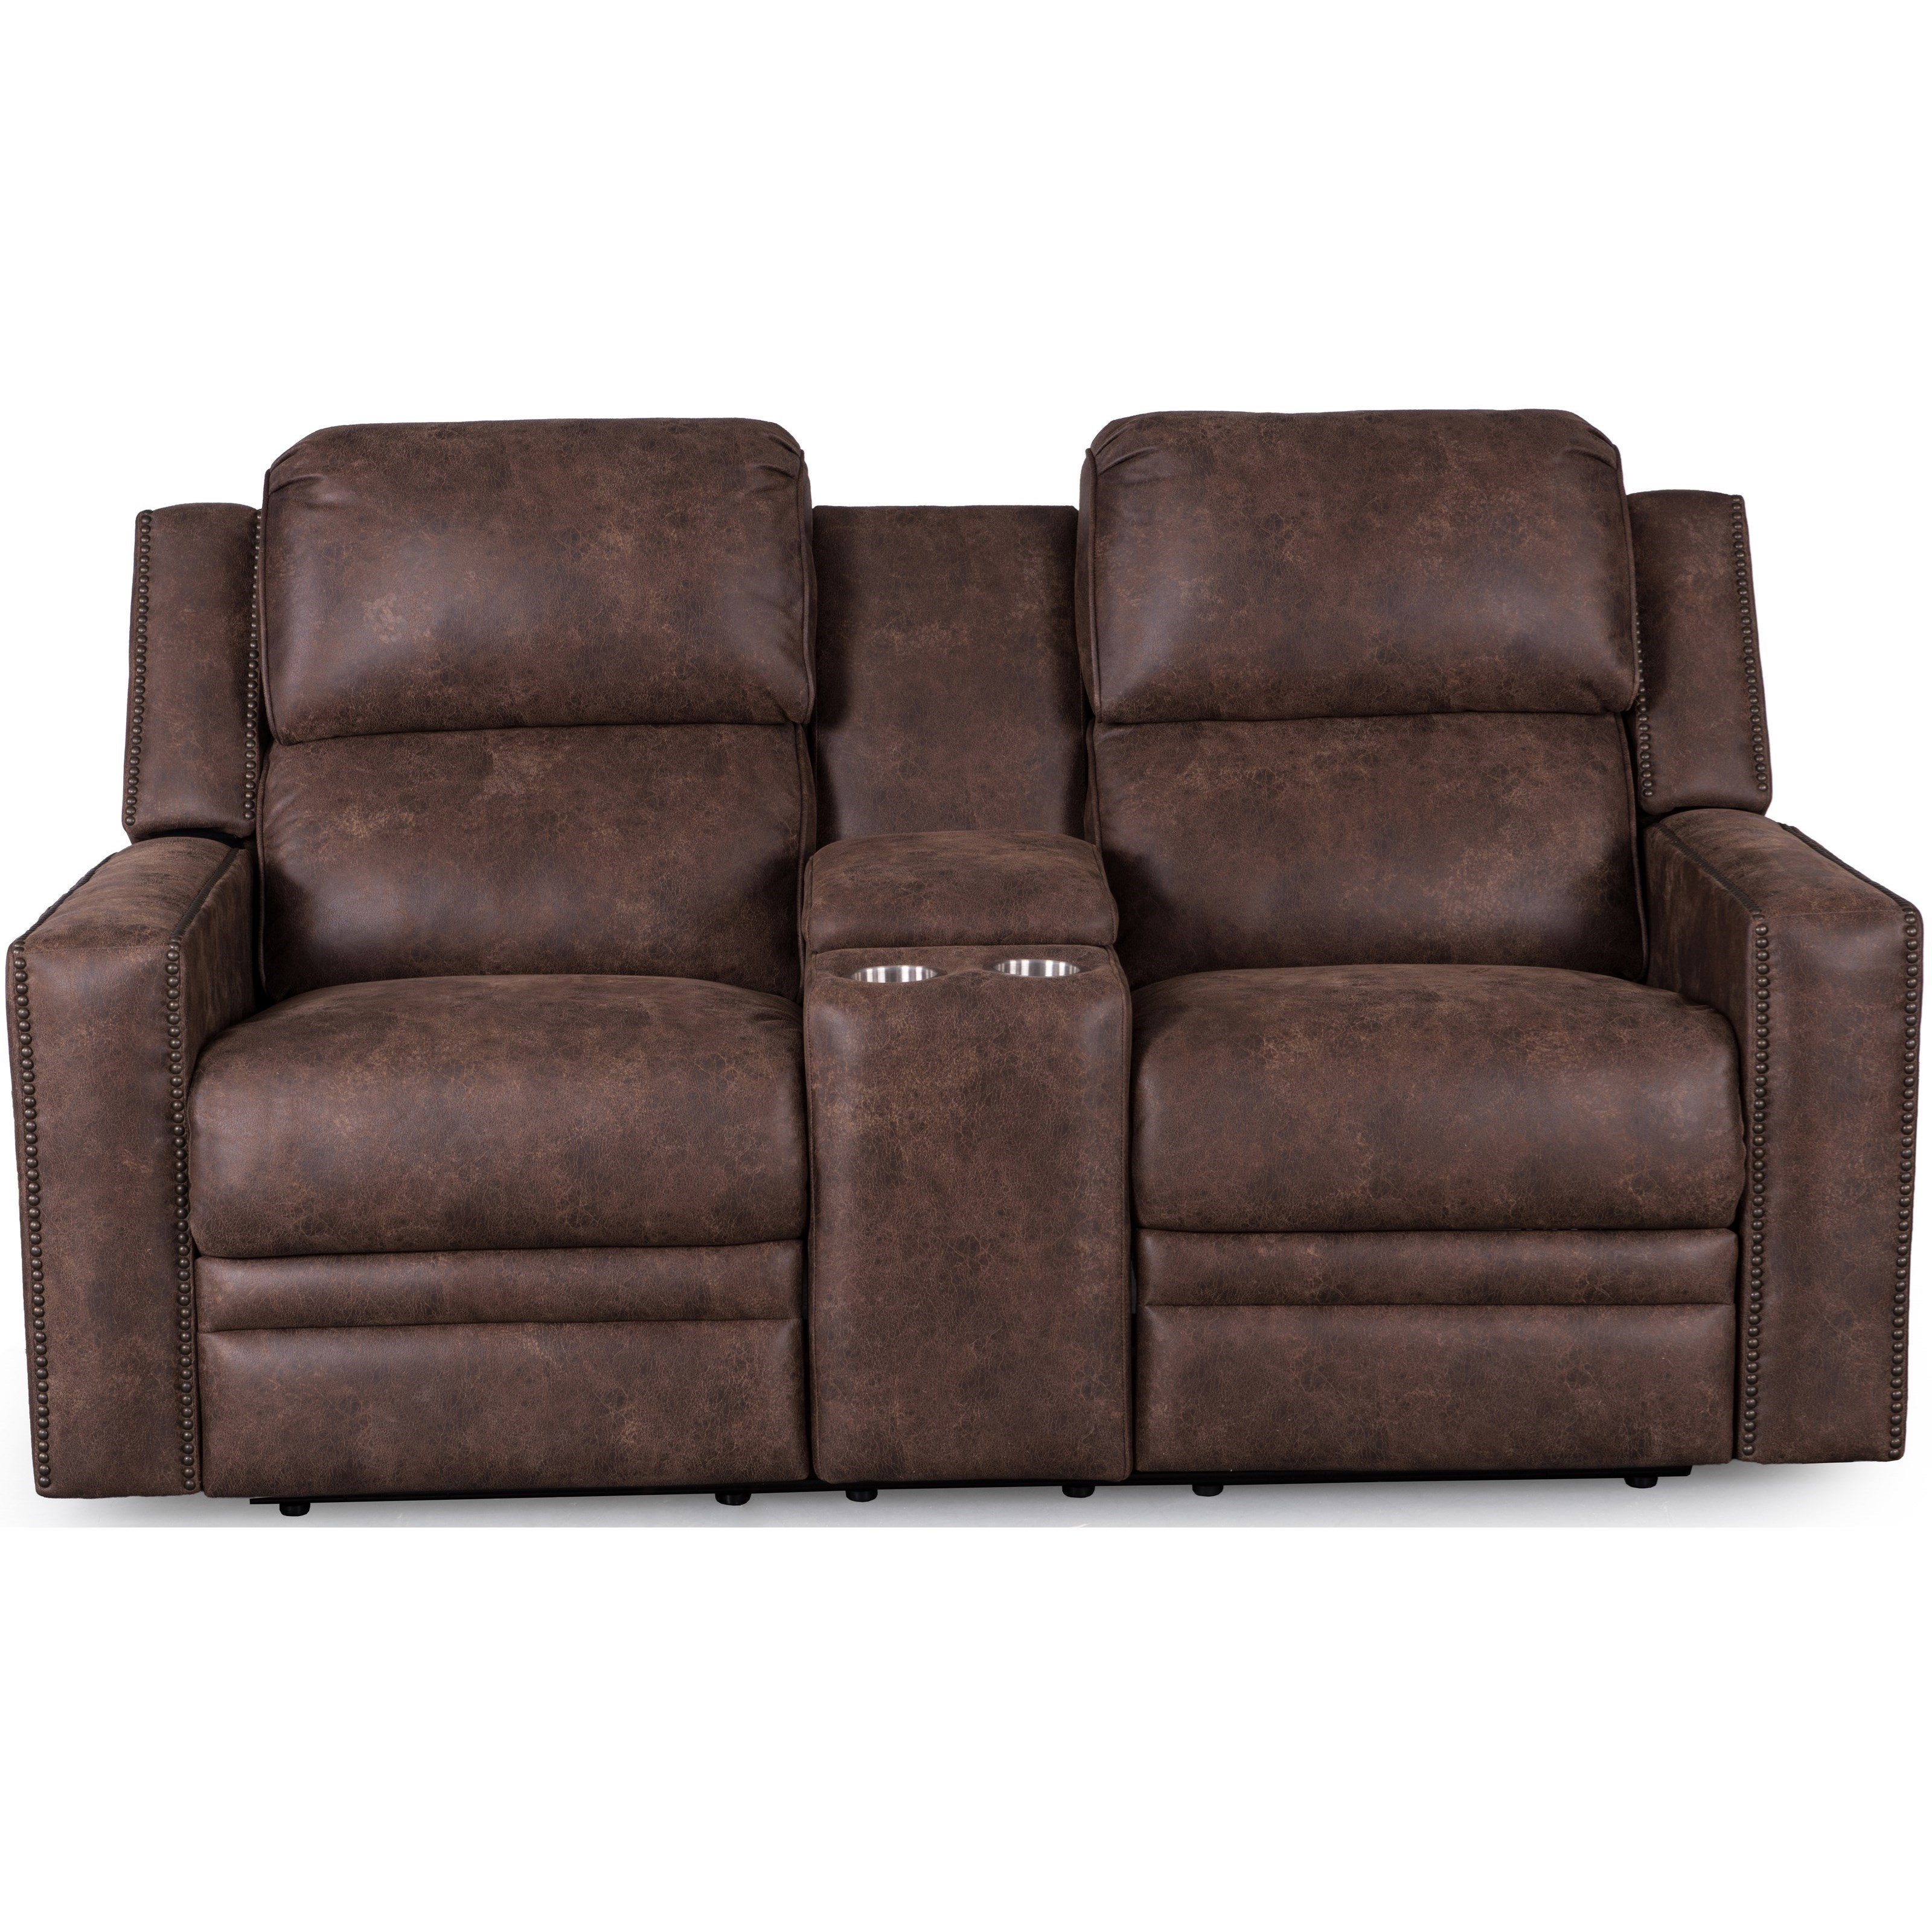 Synergy Home Furnishings 1340 Loveseat with Console - Item Number: 1340-73PHR-PasadenaElk